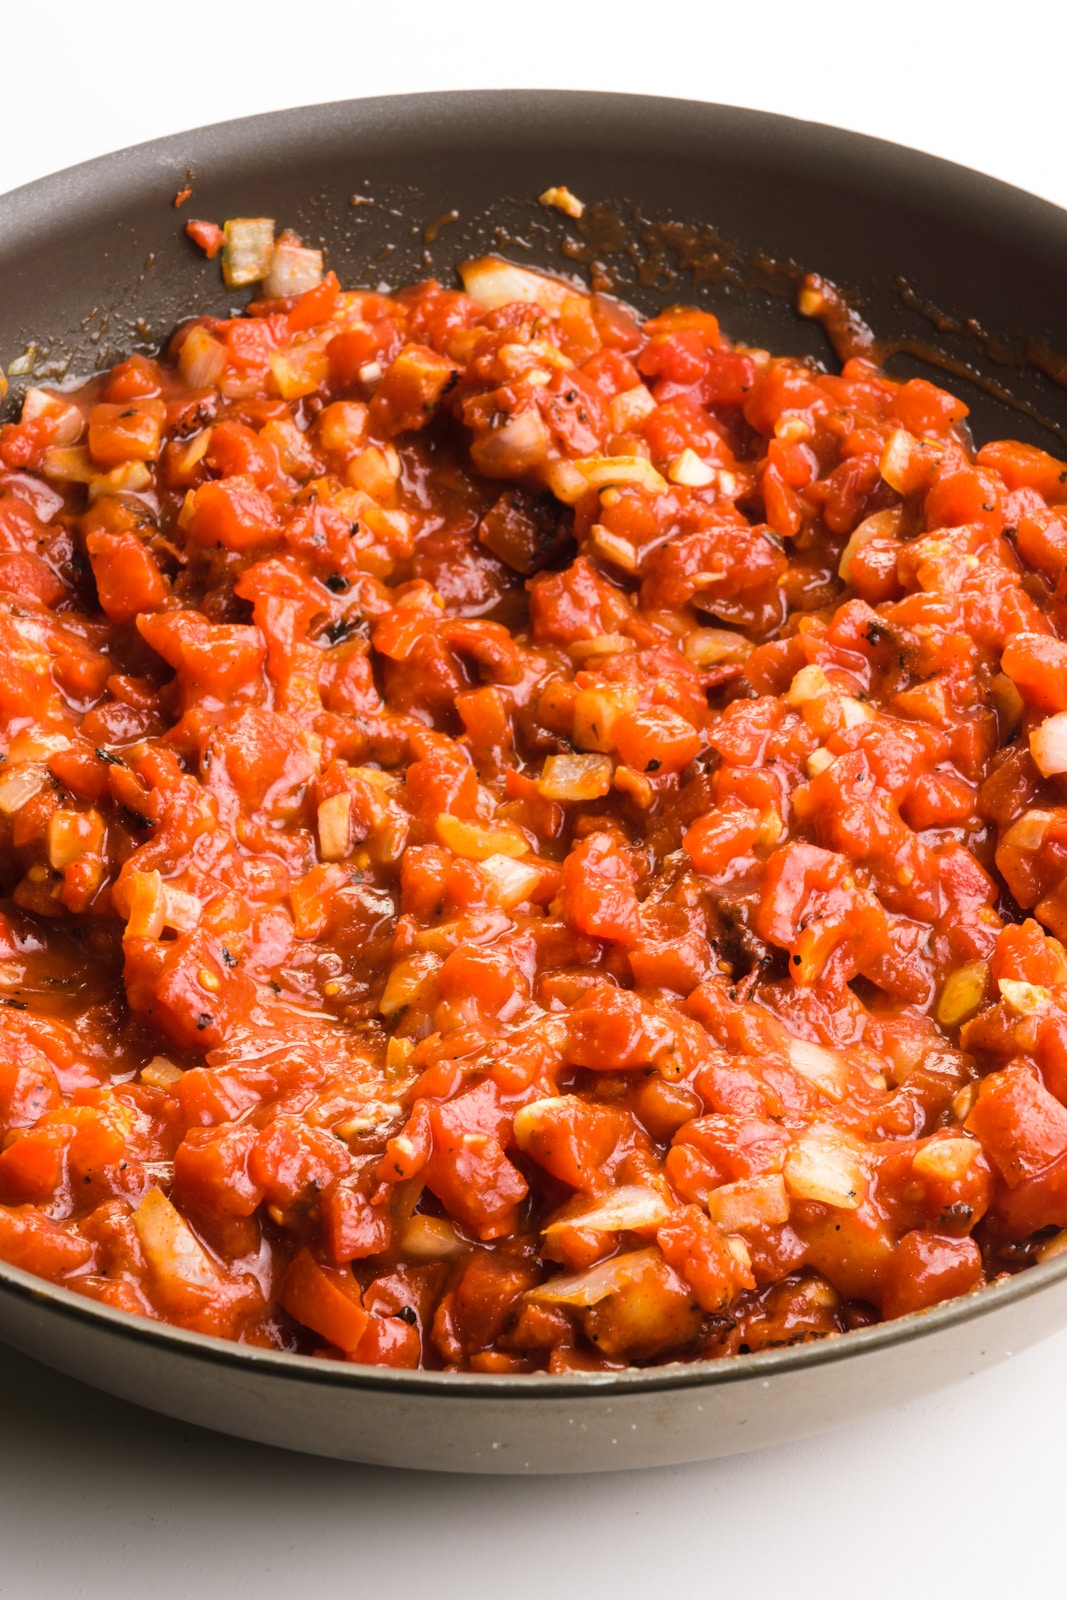 A tomato-based mixture is in a skillet.